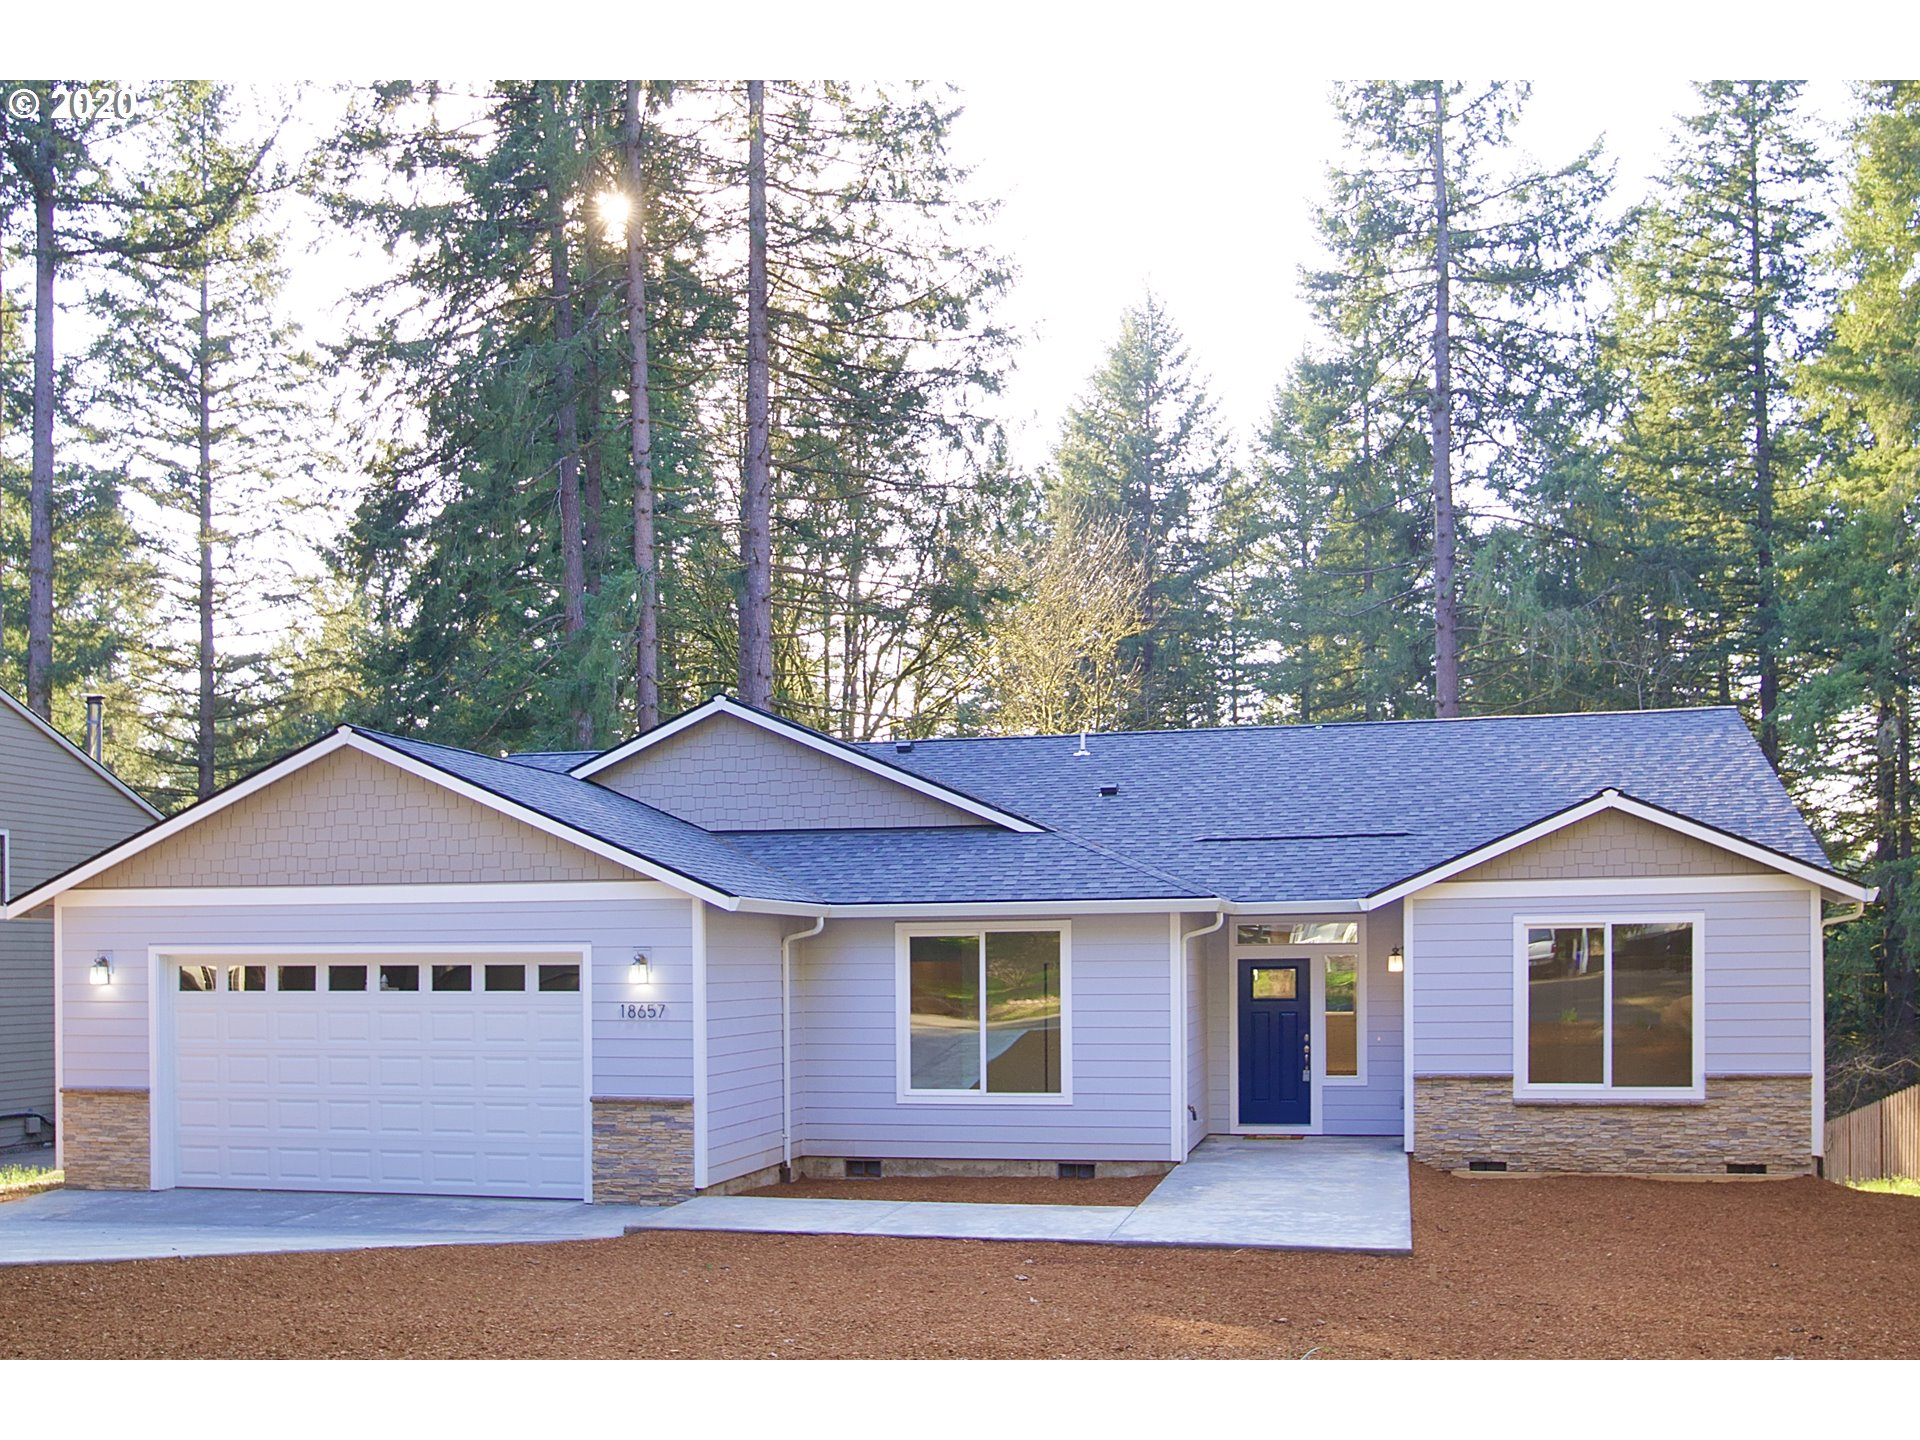 18657 S TERRY MICHAEL DR, Oregon City OR 97045